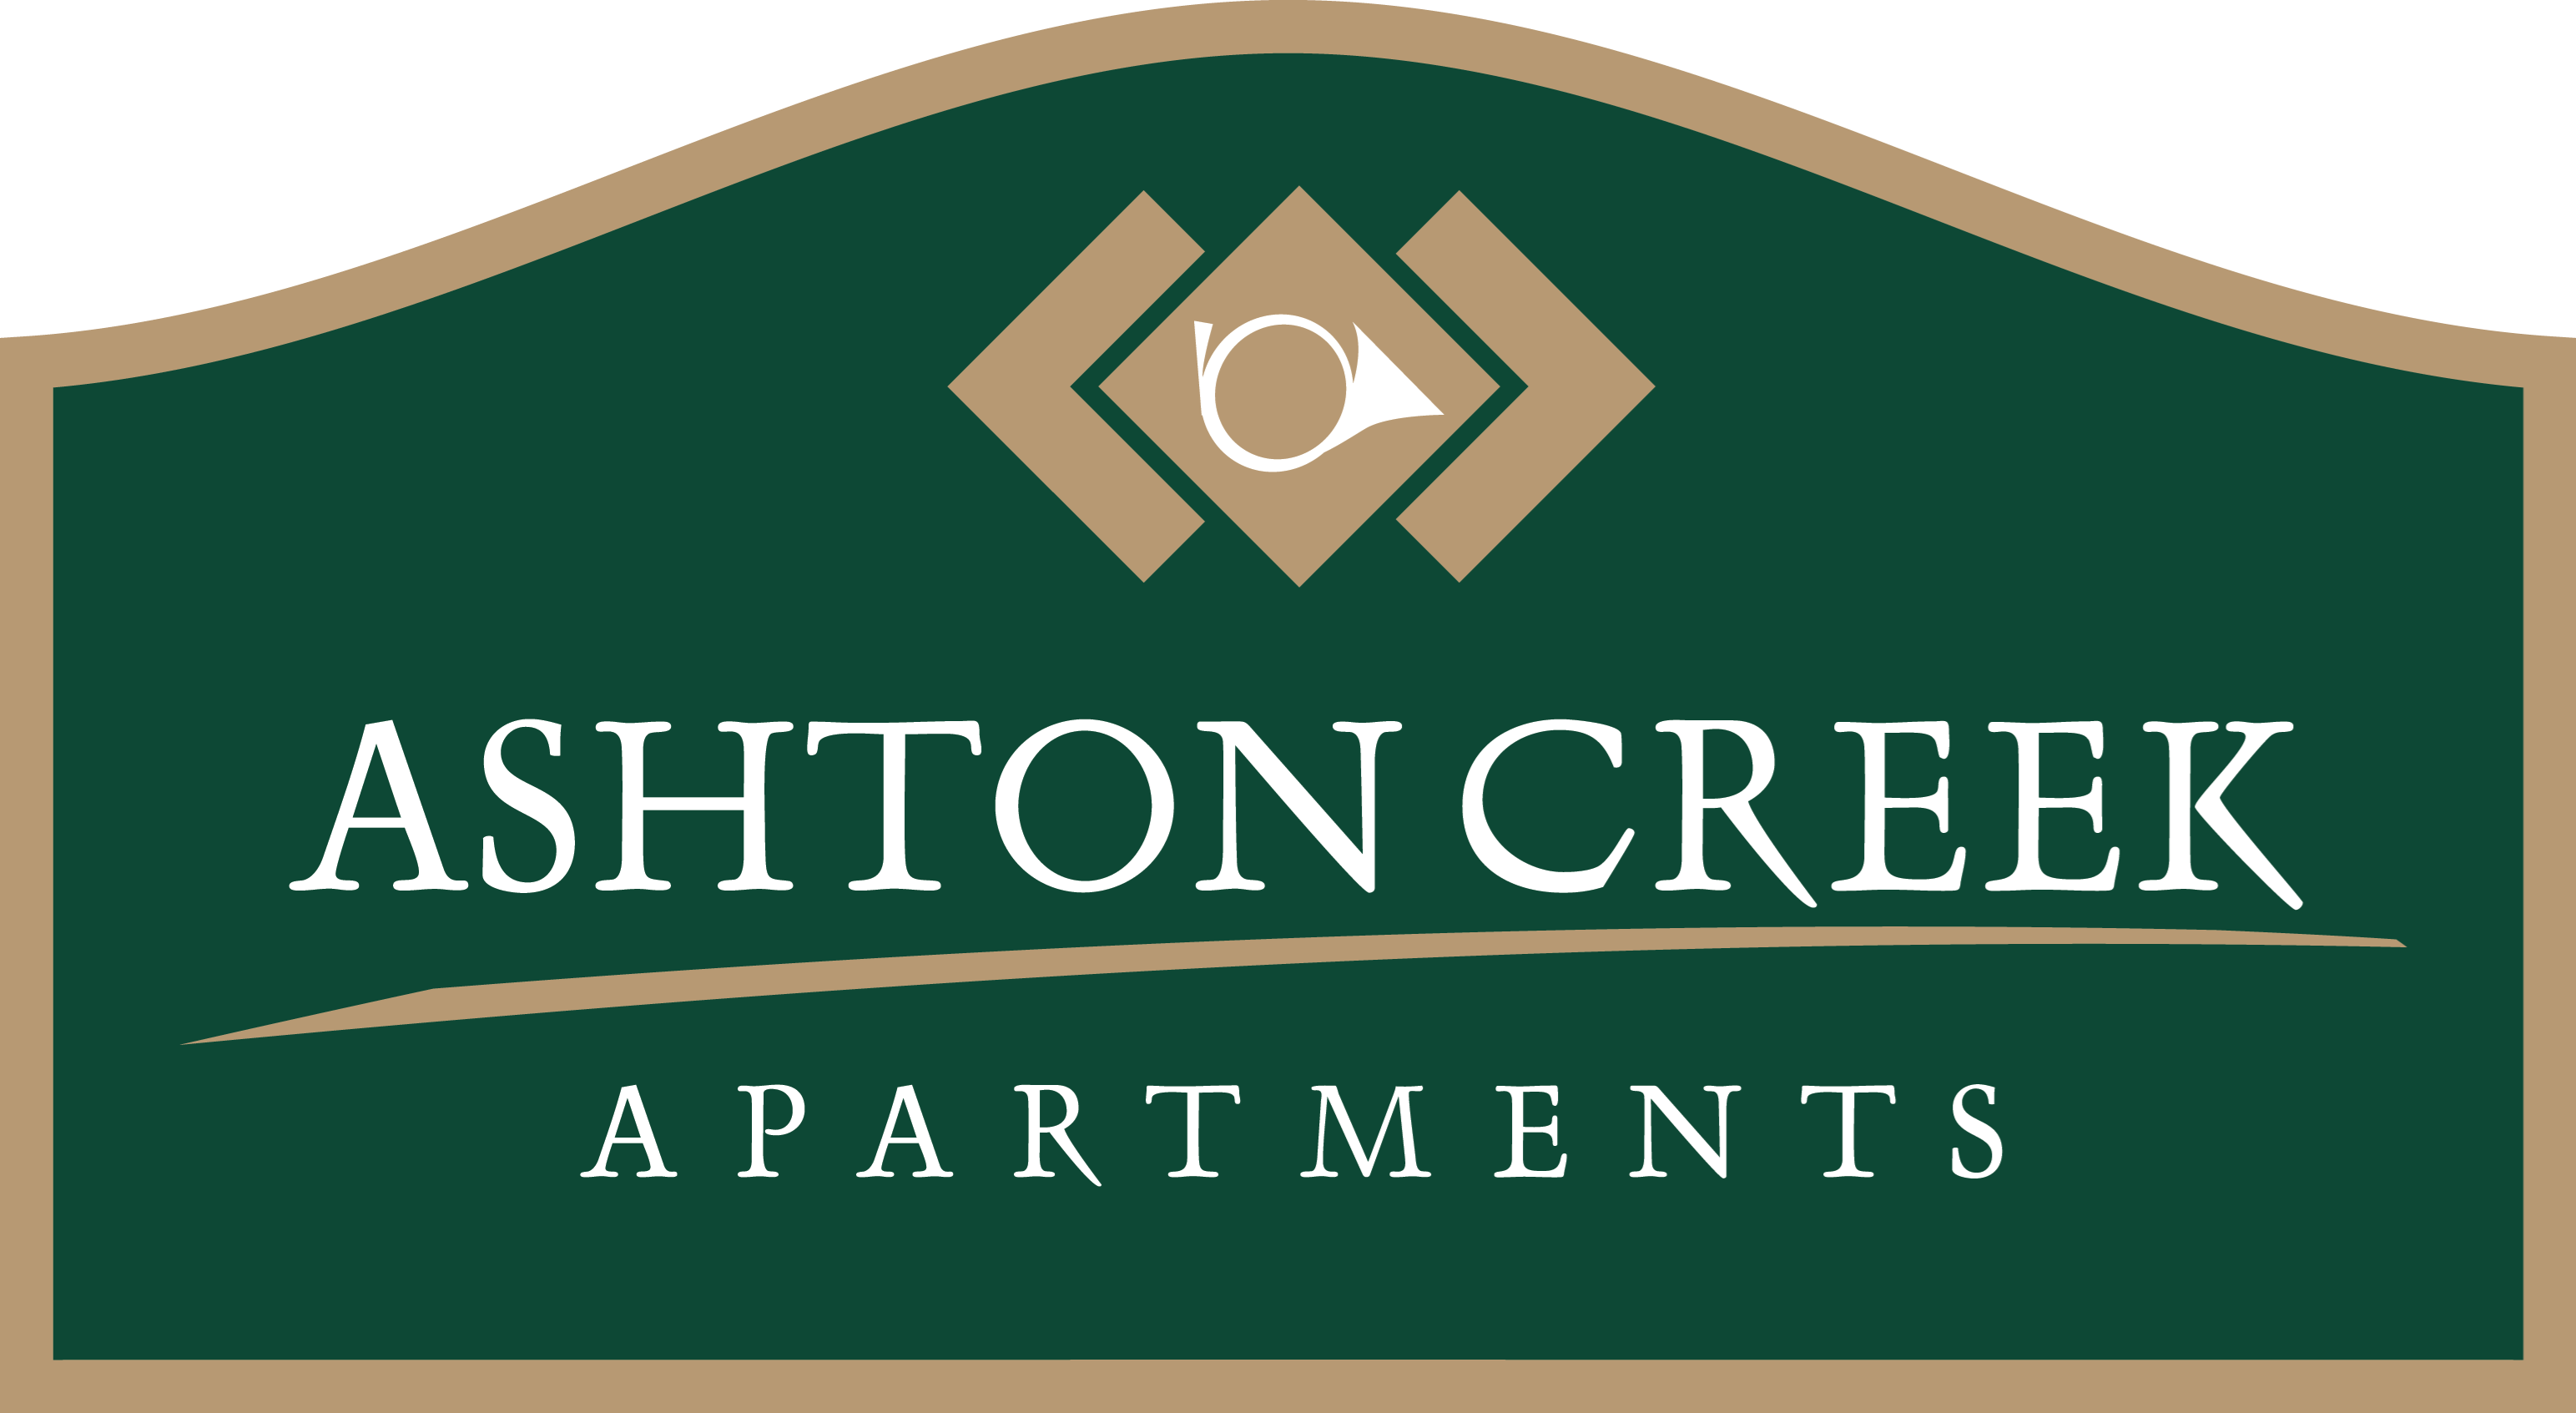 Peachy Ashton Creek Apartments In Lawrenceville Ga Download Free Architecture Designs Scobabritishbridgeorg